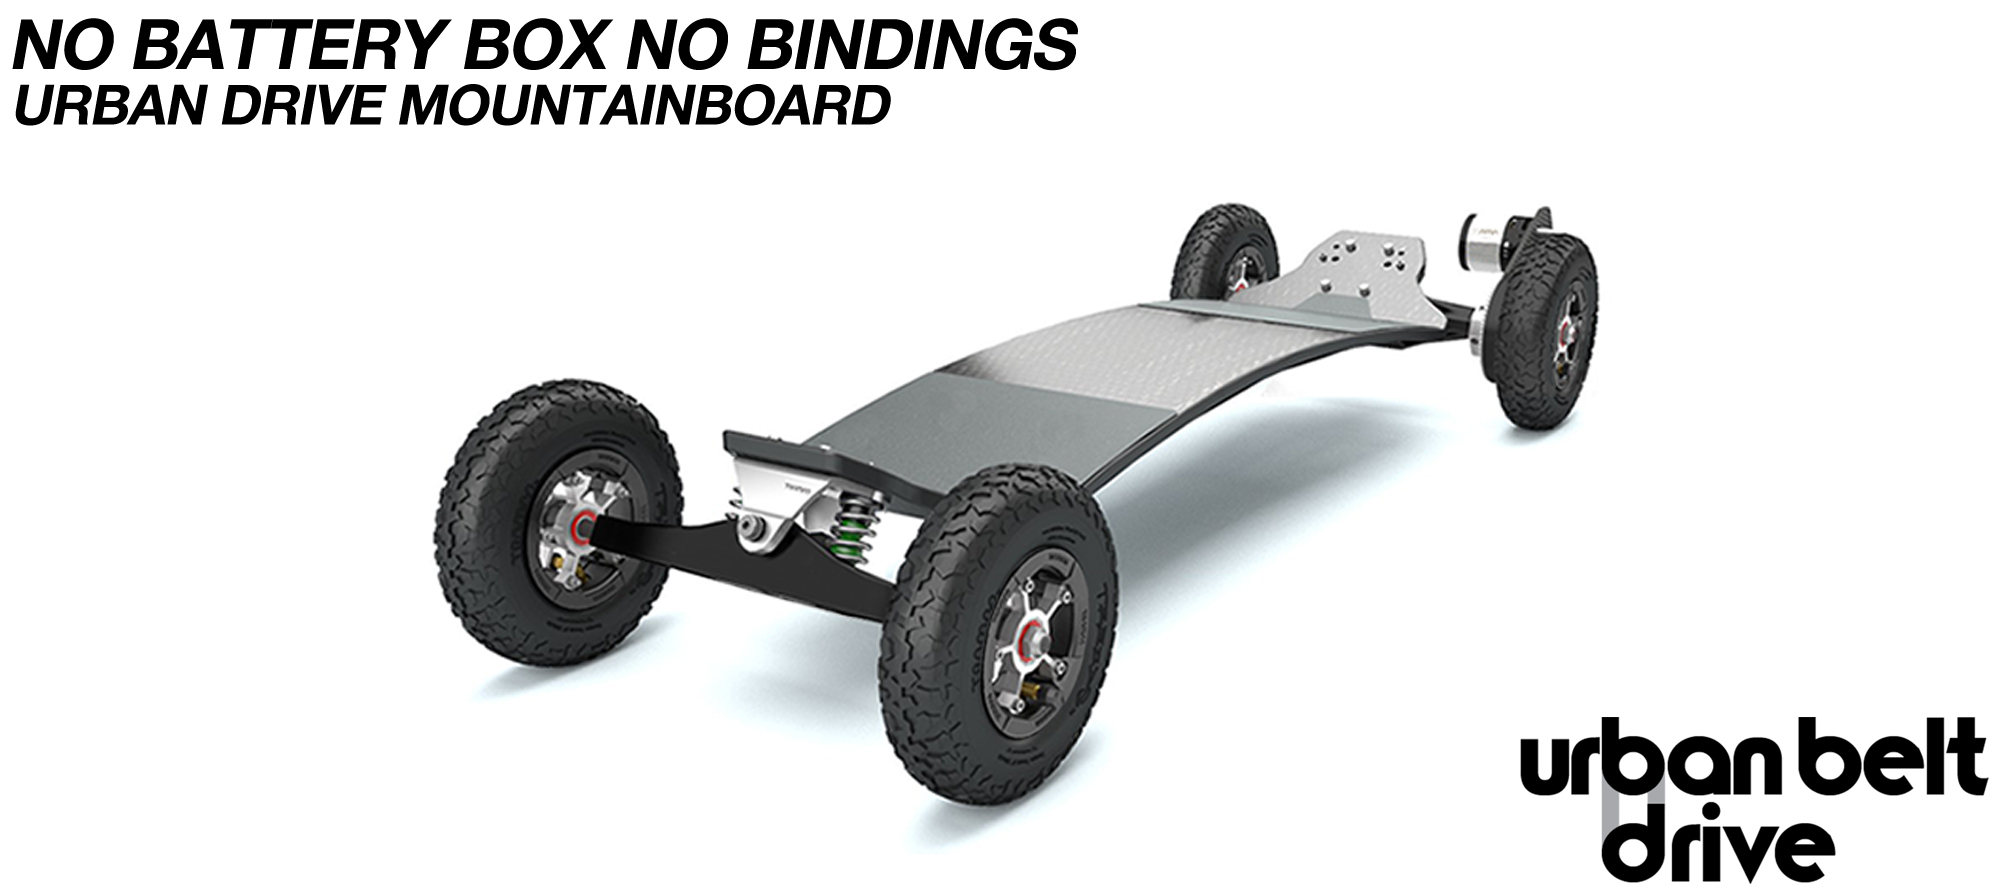 URBAN Electric Mountainboard - Urban Motor Mounts on custom TRAMPA deck ATB Trucks custom 8 inch Wheels NO Battery Box Single VESC - NO BINDINGS